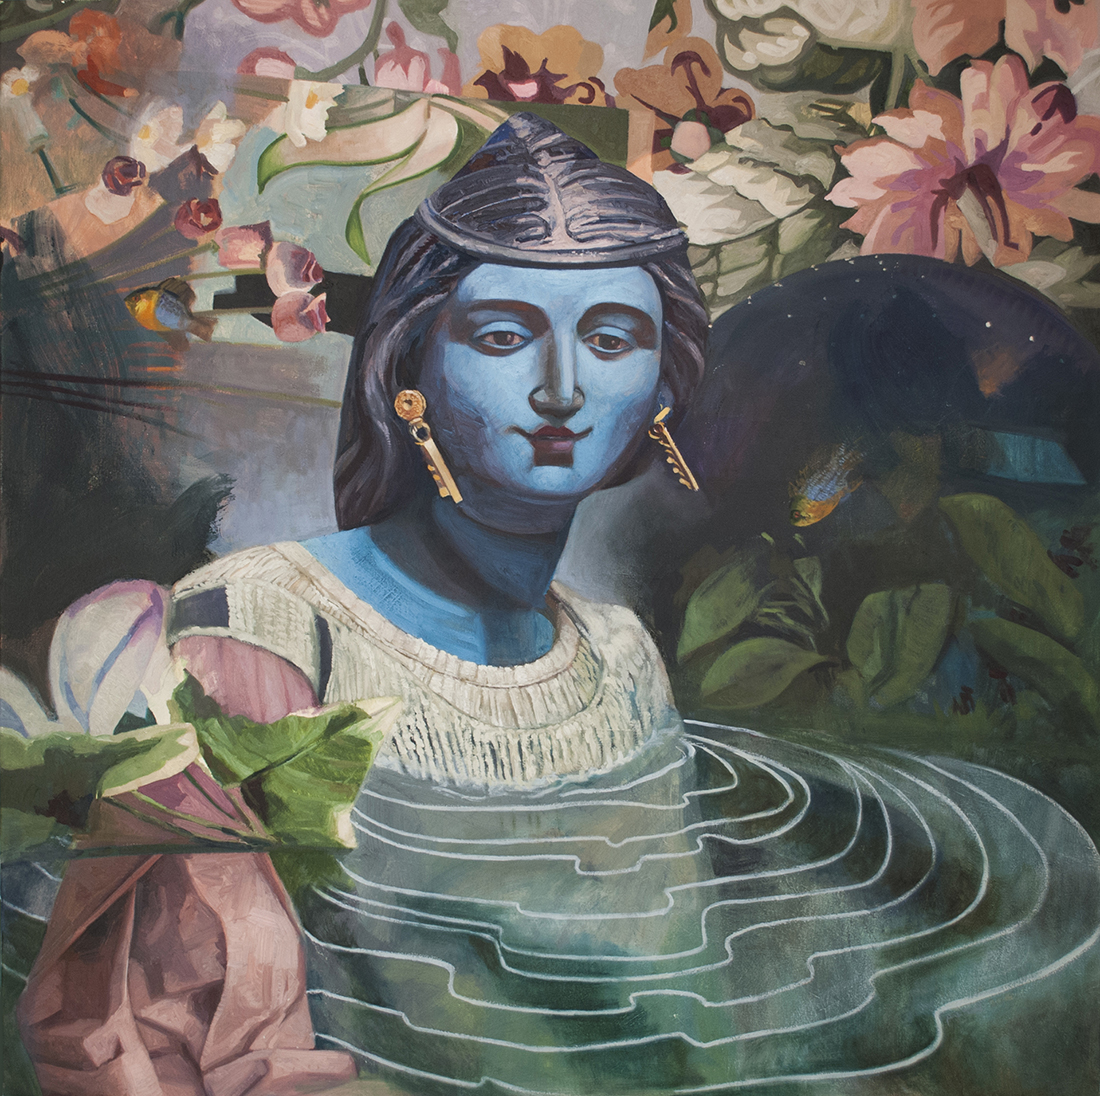 A blue-faced woman, small smile, surrounded by flower-like shapes; suggestion of pond; sits at centre of rippled water.